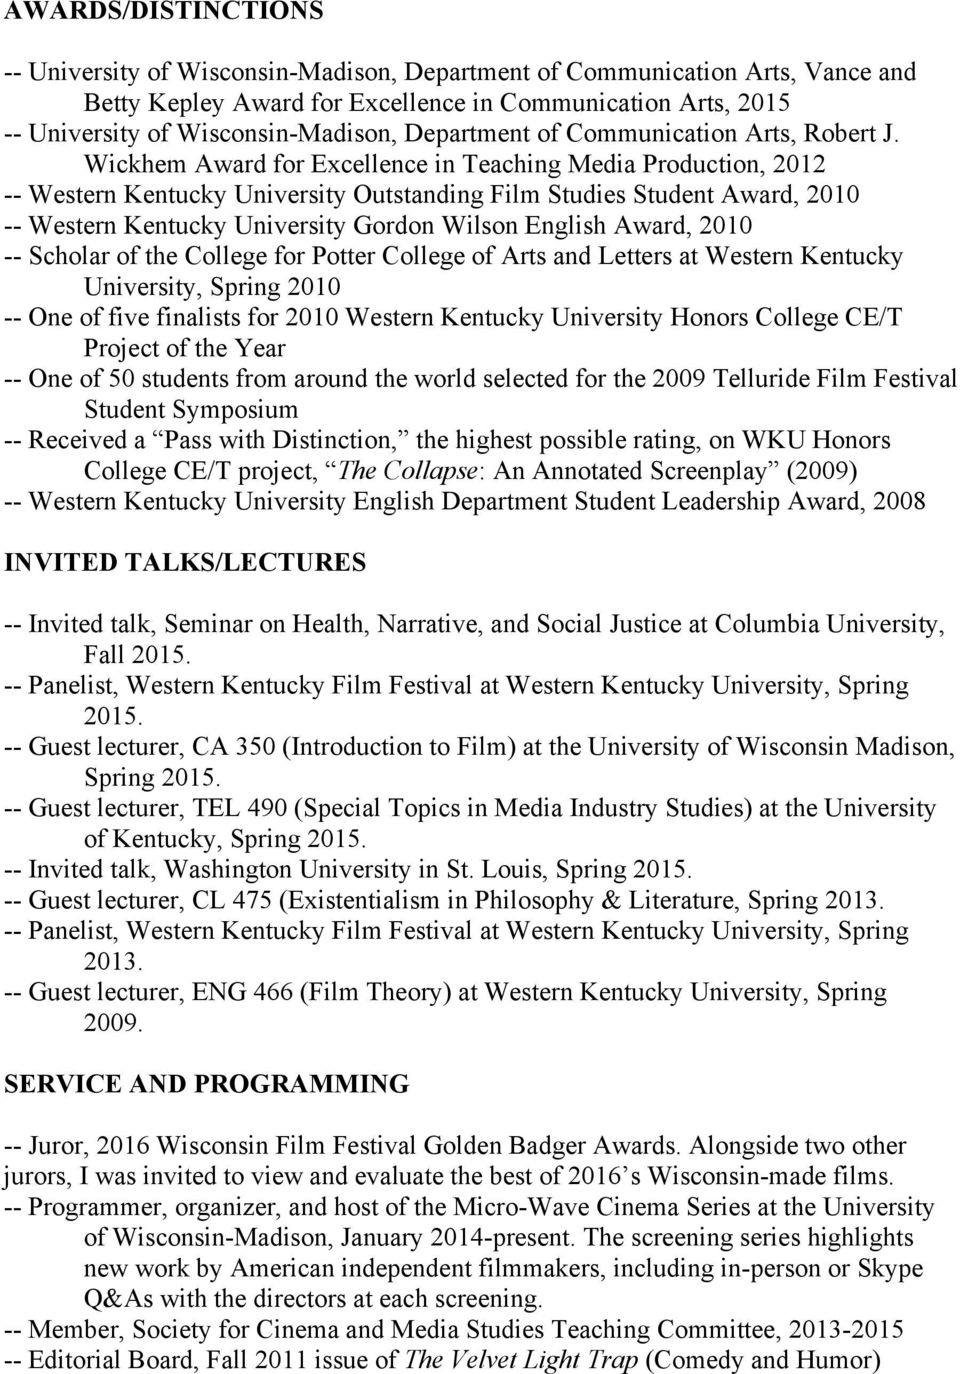 Wickhem Award for Excellence in Teaching Media Production, 2012 -- Western Kentucky University Outstanding Film Studies Student Award, 2010 -- Western Kentucky University Gordon Wilson English Award,